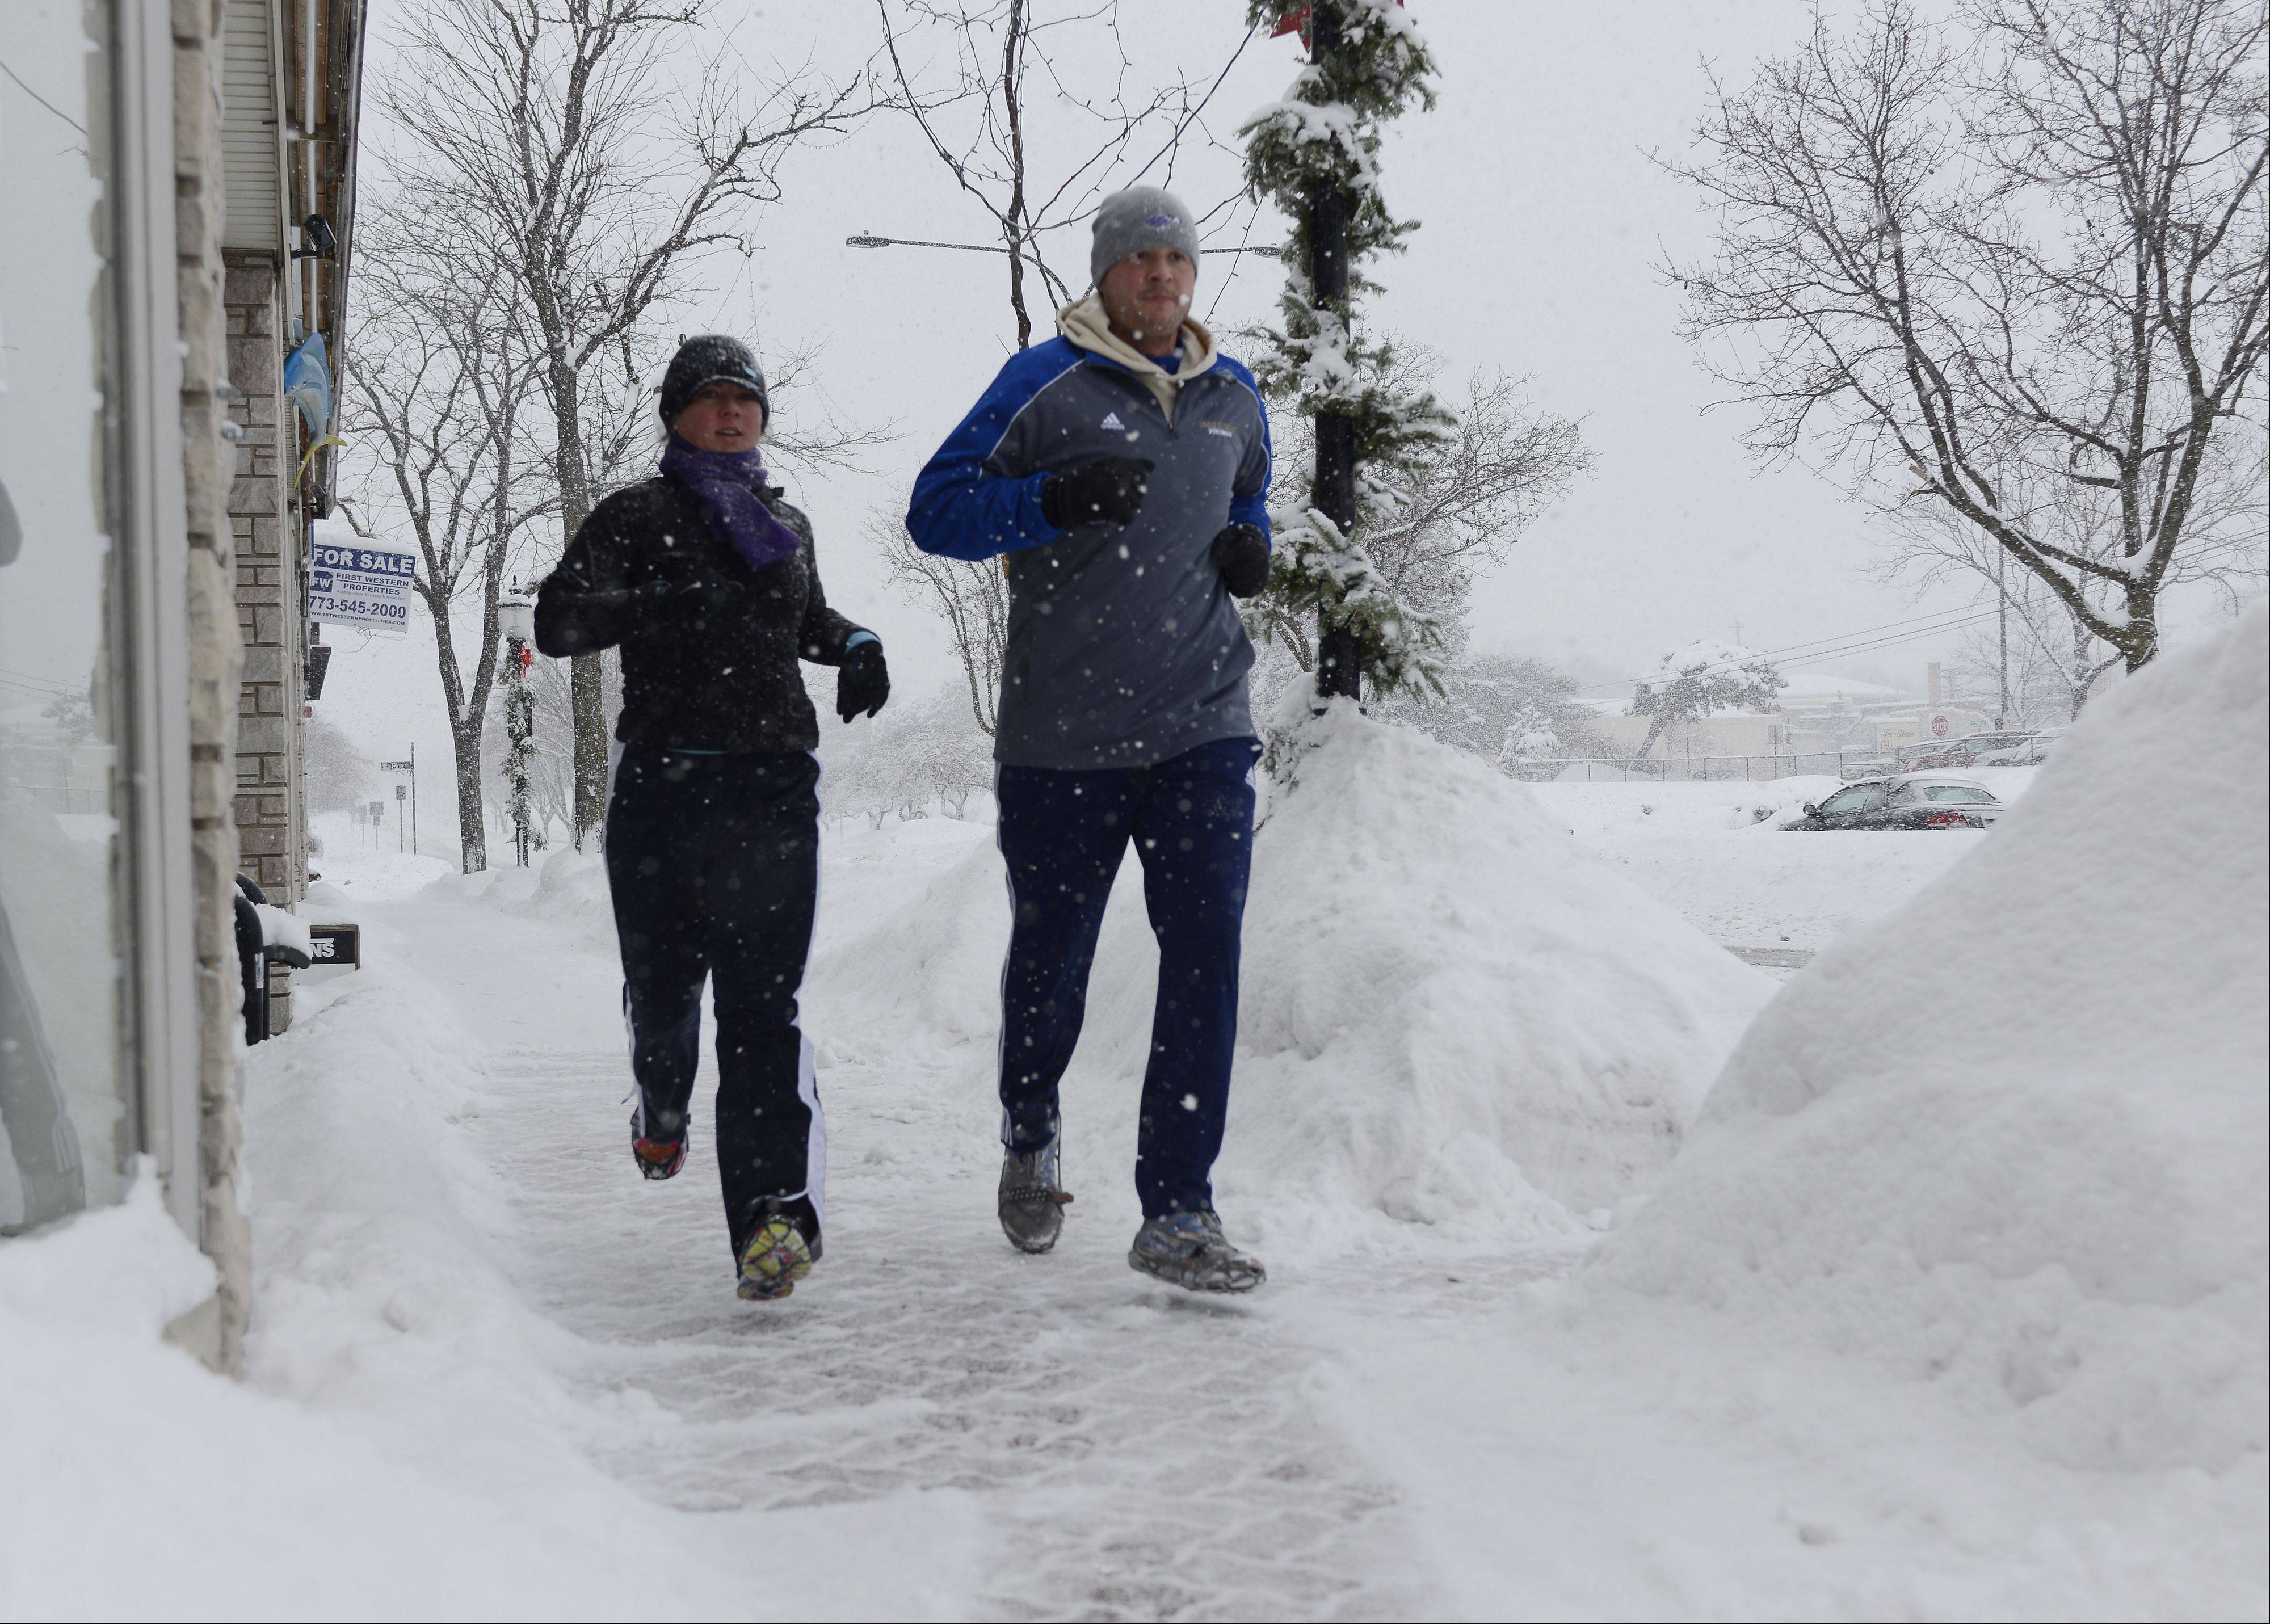 Jessica Tomasiewicz of Mount Prospect and her husband Kevin jog in the snow alongside Prospect Avenue in Mount Prospect Thursday.